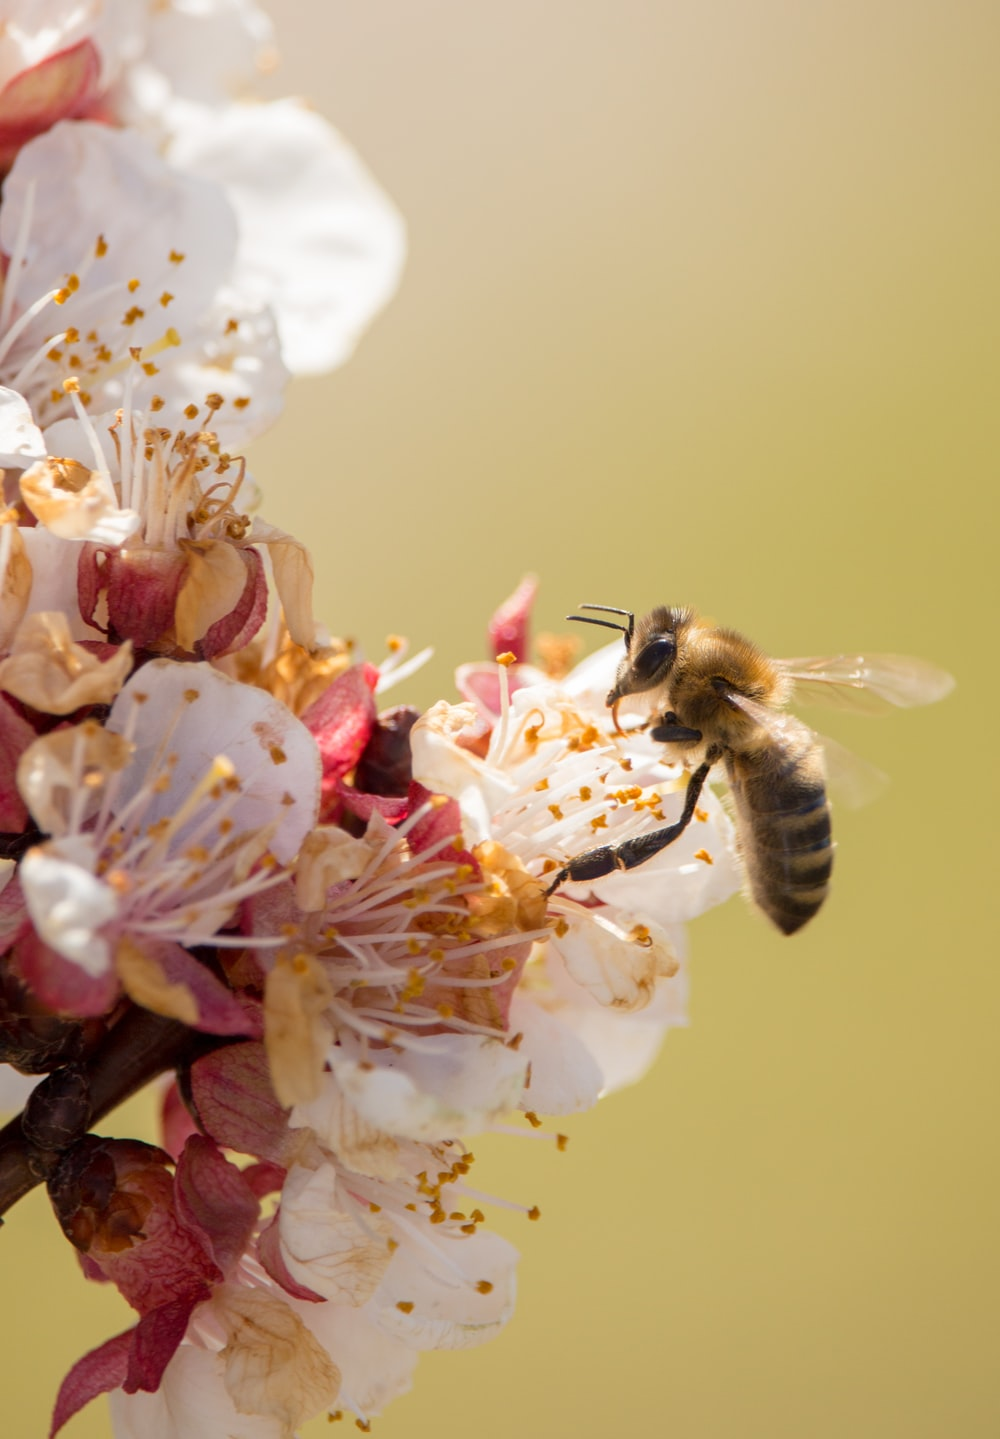 wasp on cherry blossom flowers